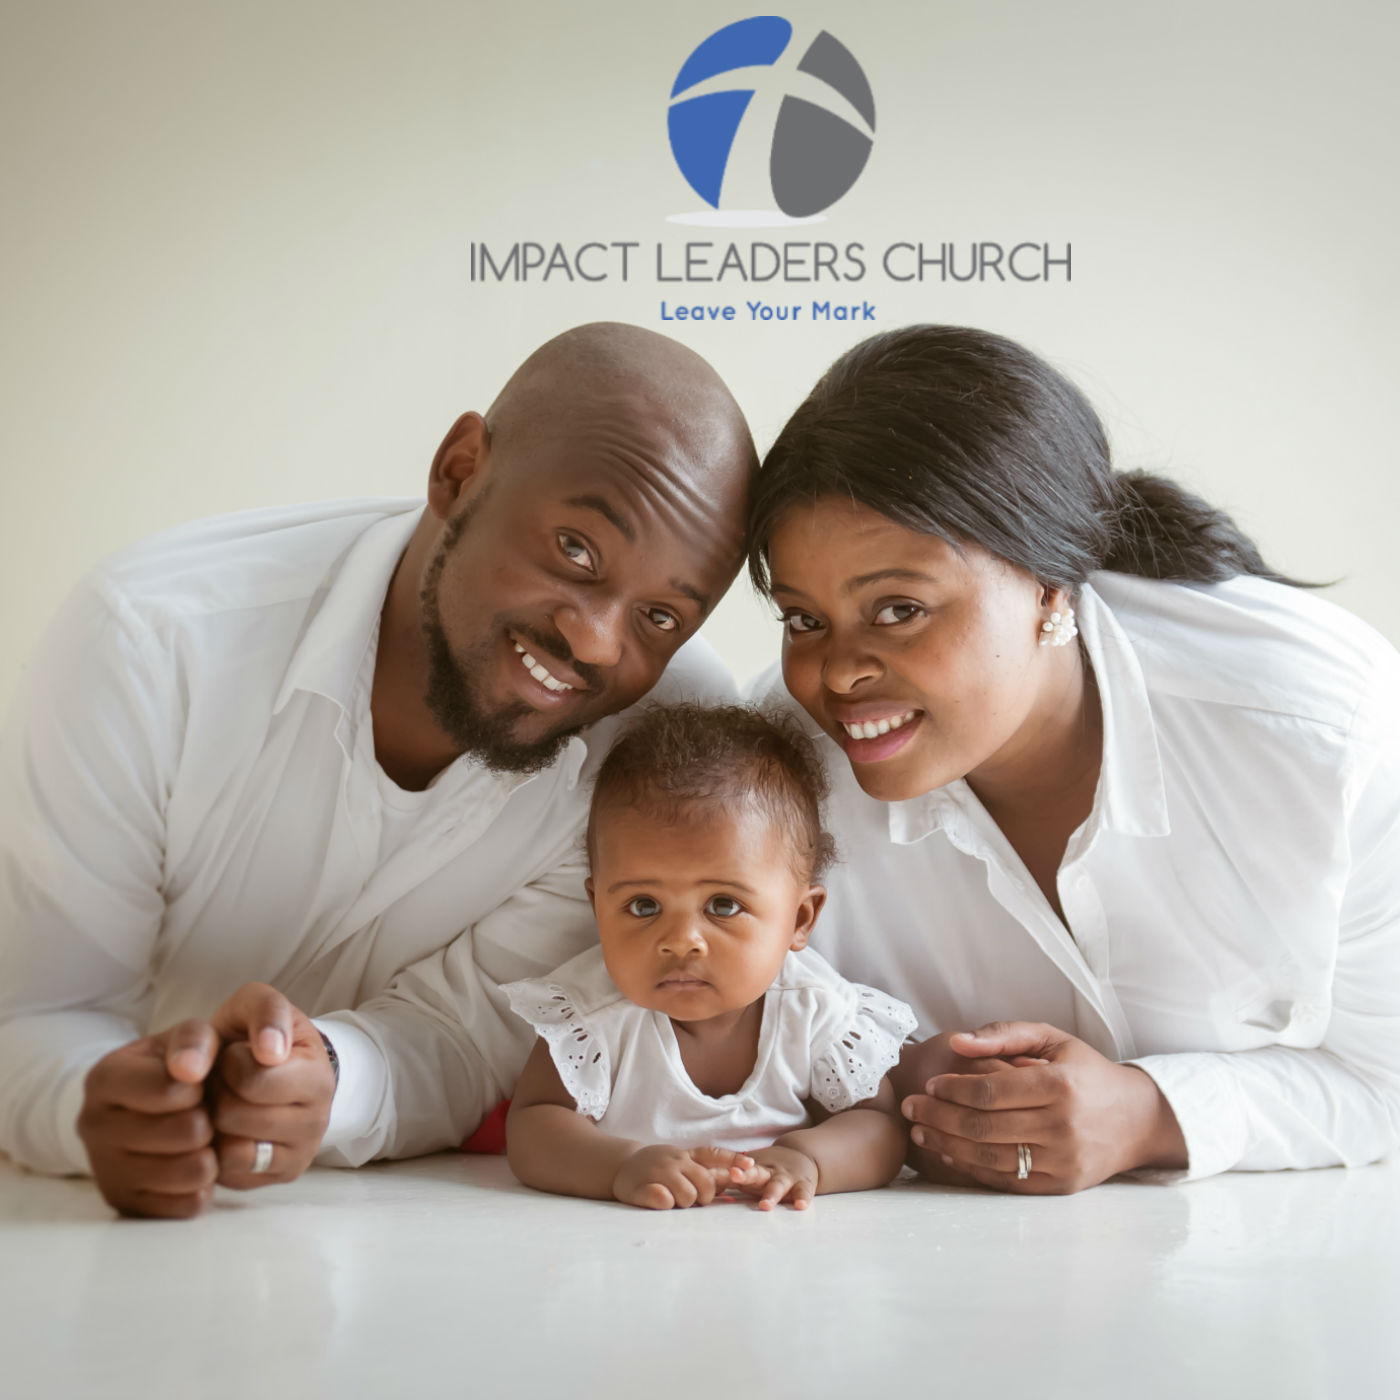 Impact Leaders Church